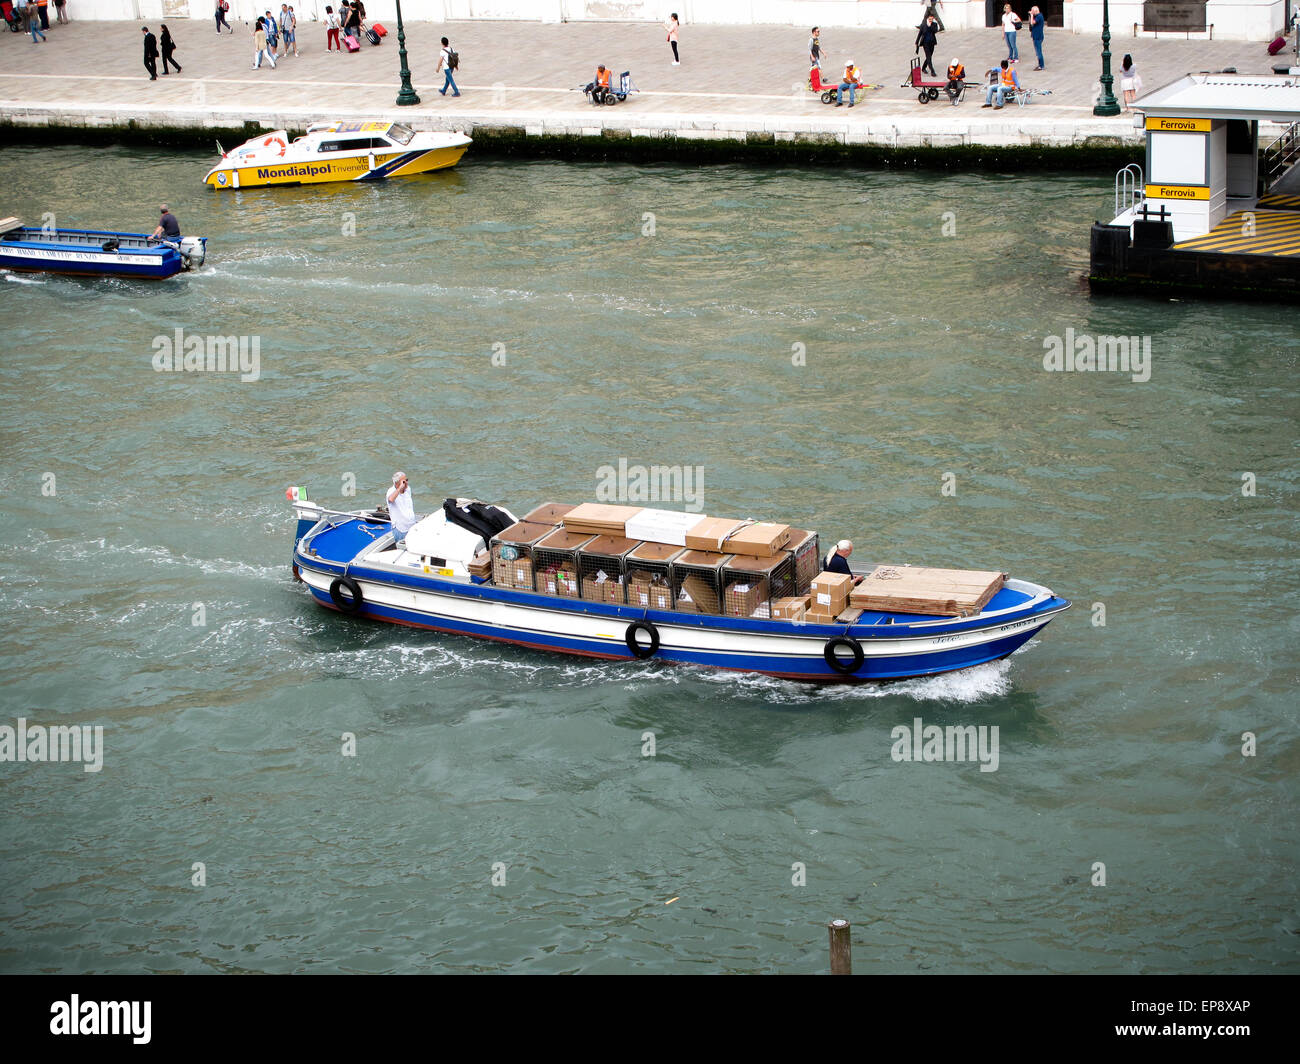 A blue commercial boat loaded with goods on the Grand Canal in Venice - Stock Image